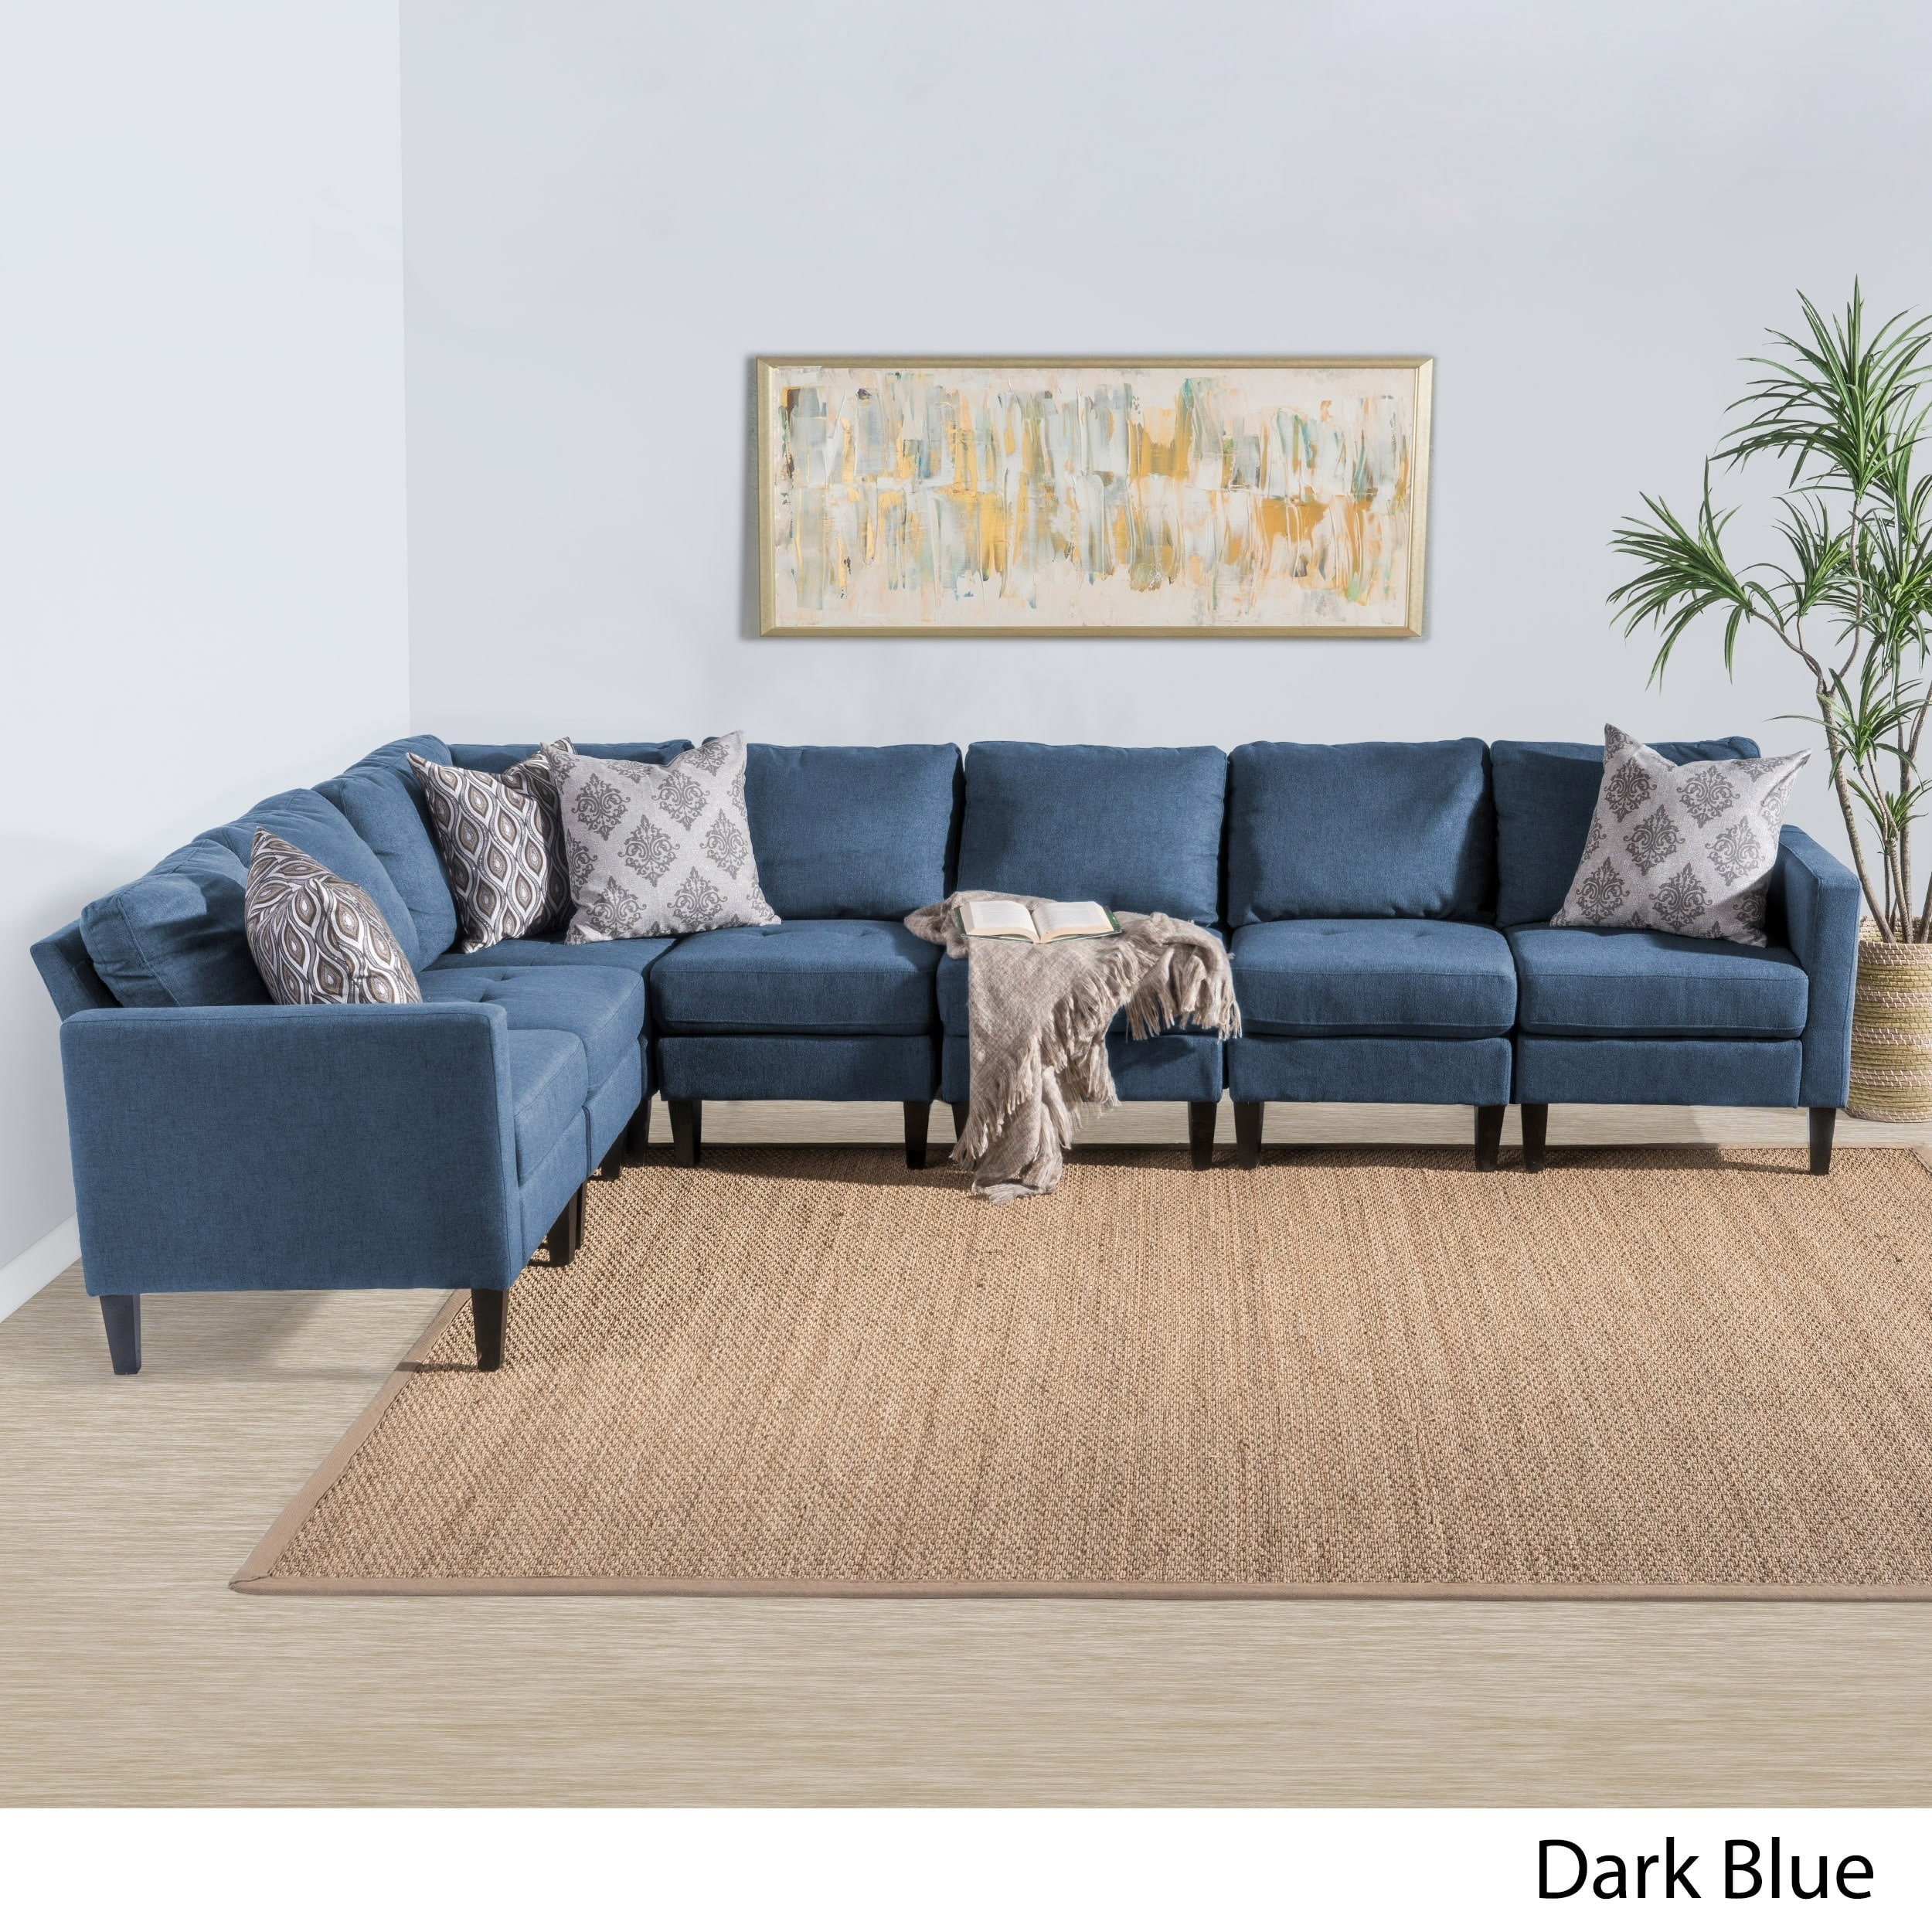 Sectional Sofa Living Room Furniture For Less   Overstock In 10X8 Sectional Sofas (Image 5 of 10)